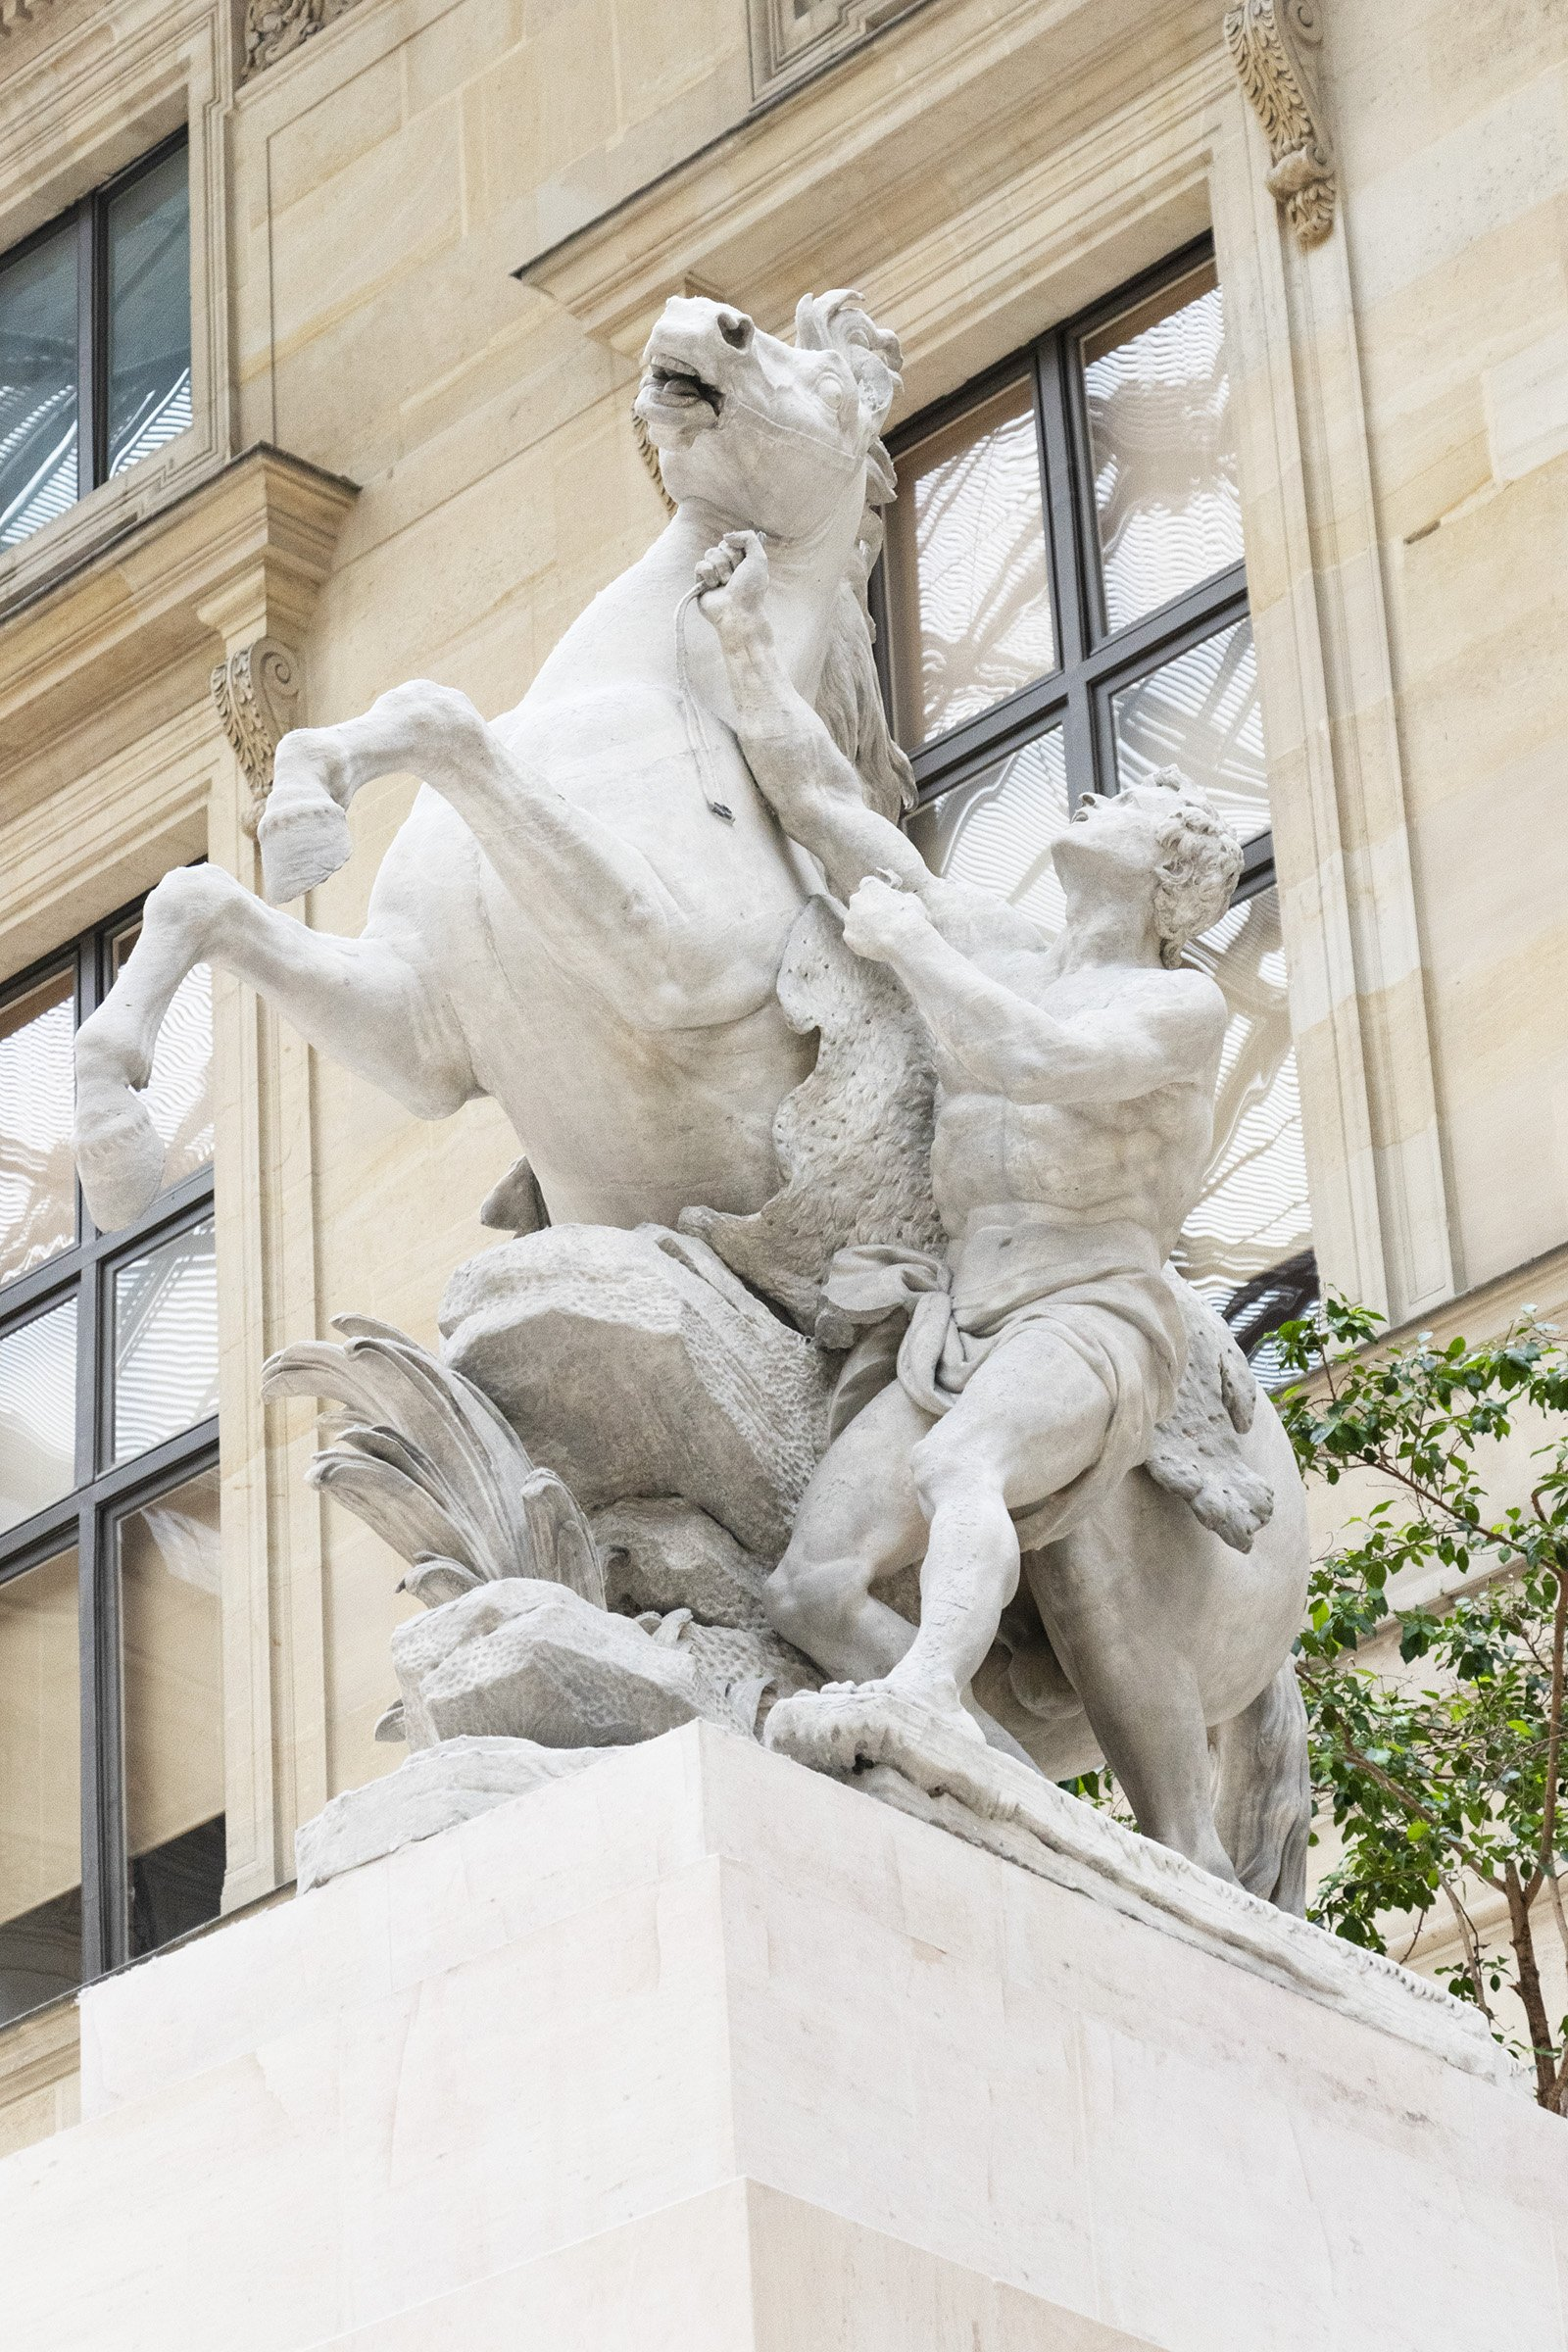 One Marly horse statue - Louvre, Paris